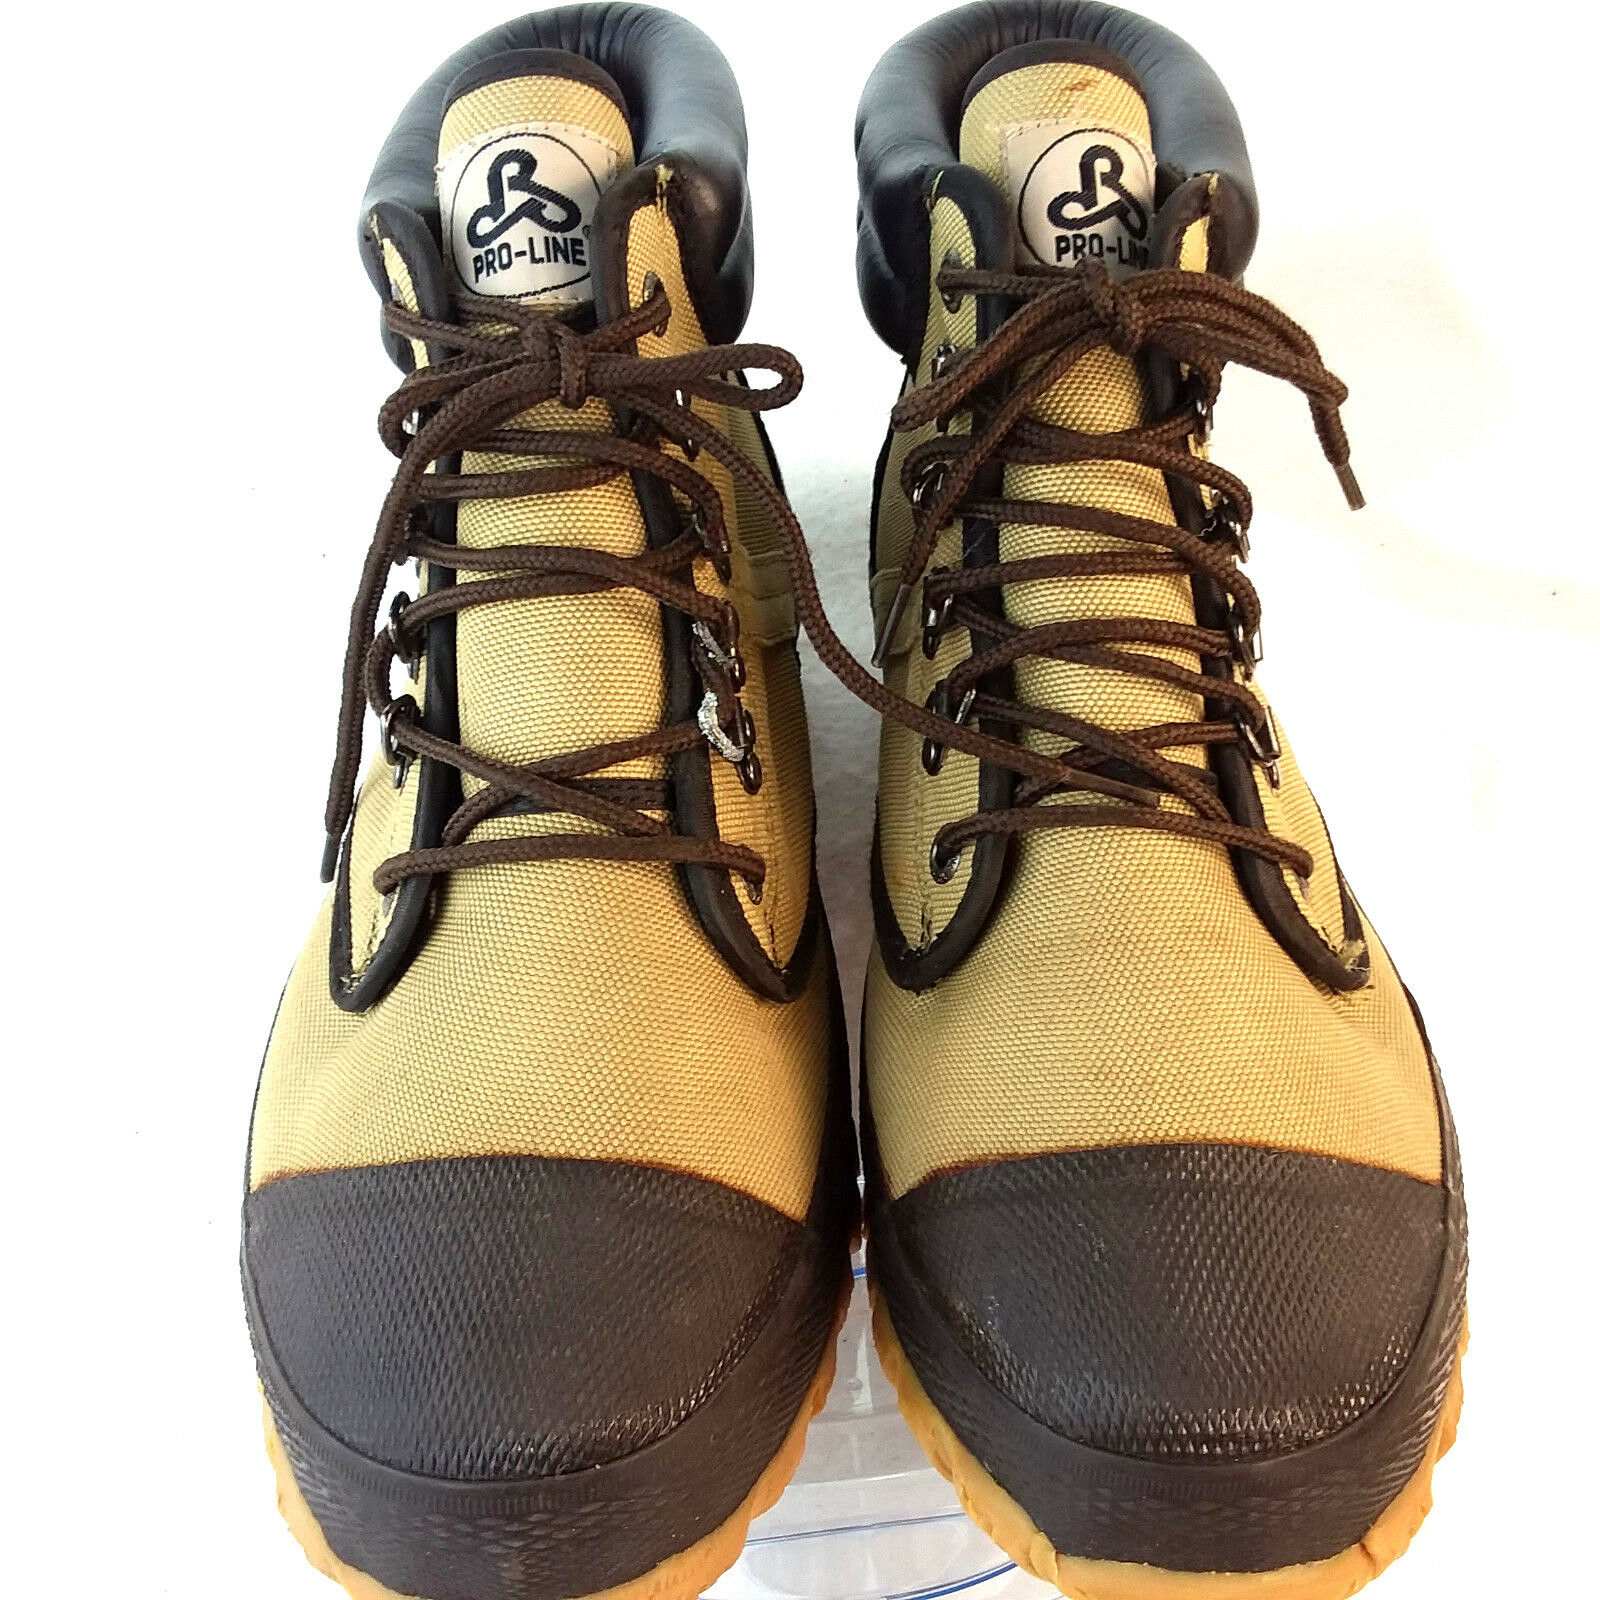 Pro-Line Mens Fishing Wading Boots Steel Shank Size 12